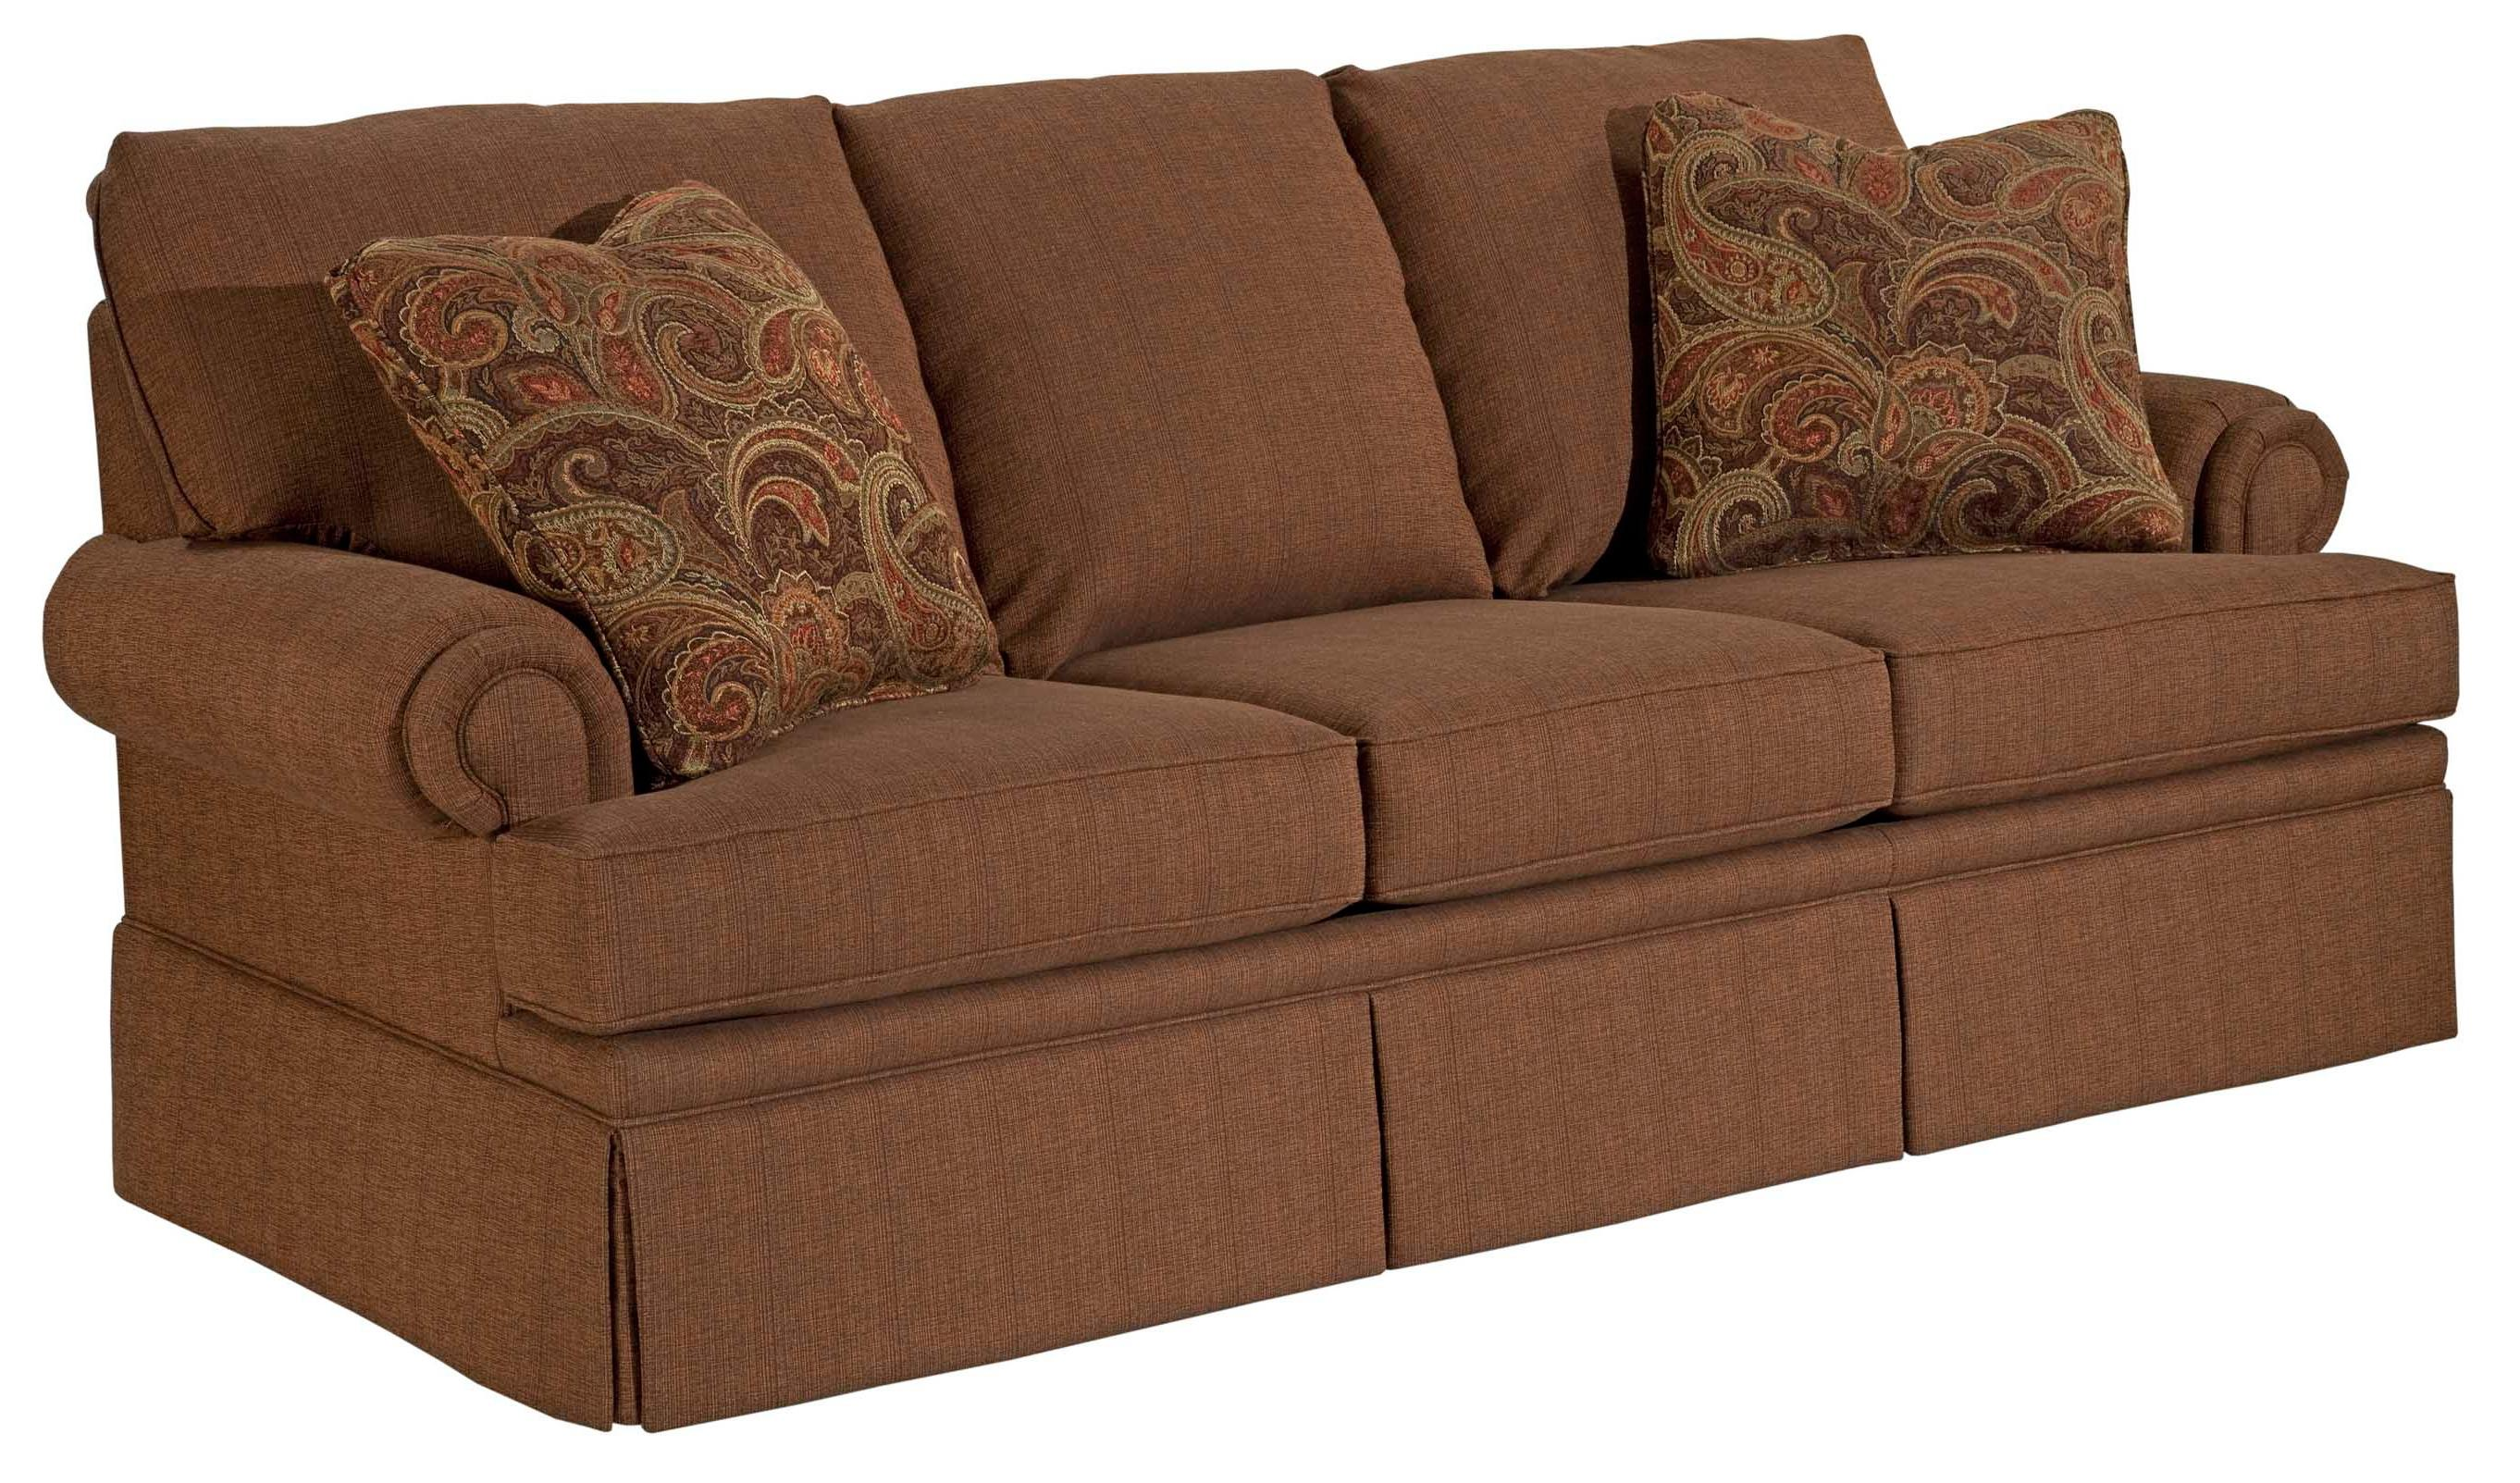 Broyhill Furniture Jenna Sofa - Item Number: 4342-3